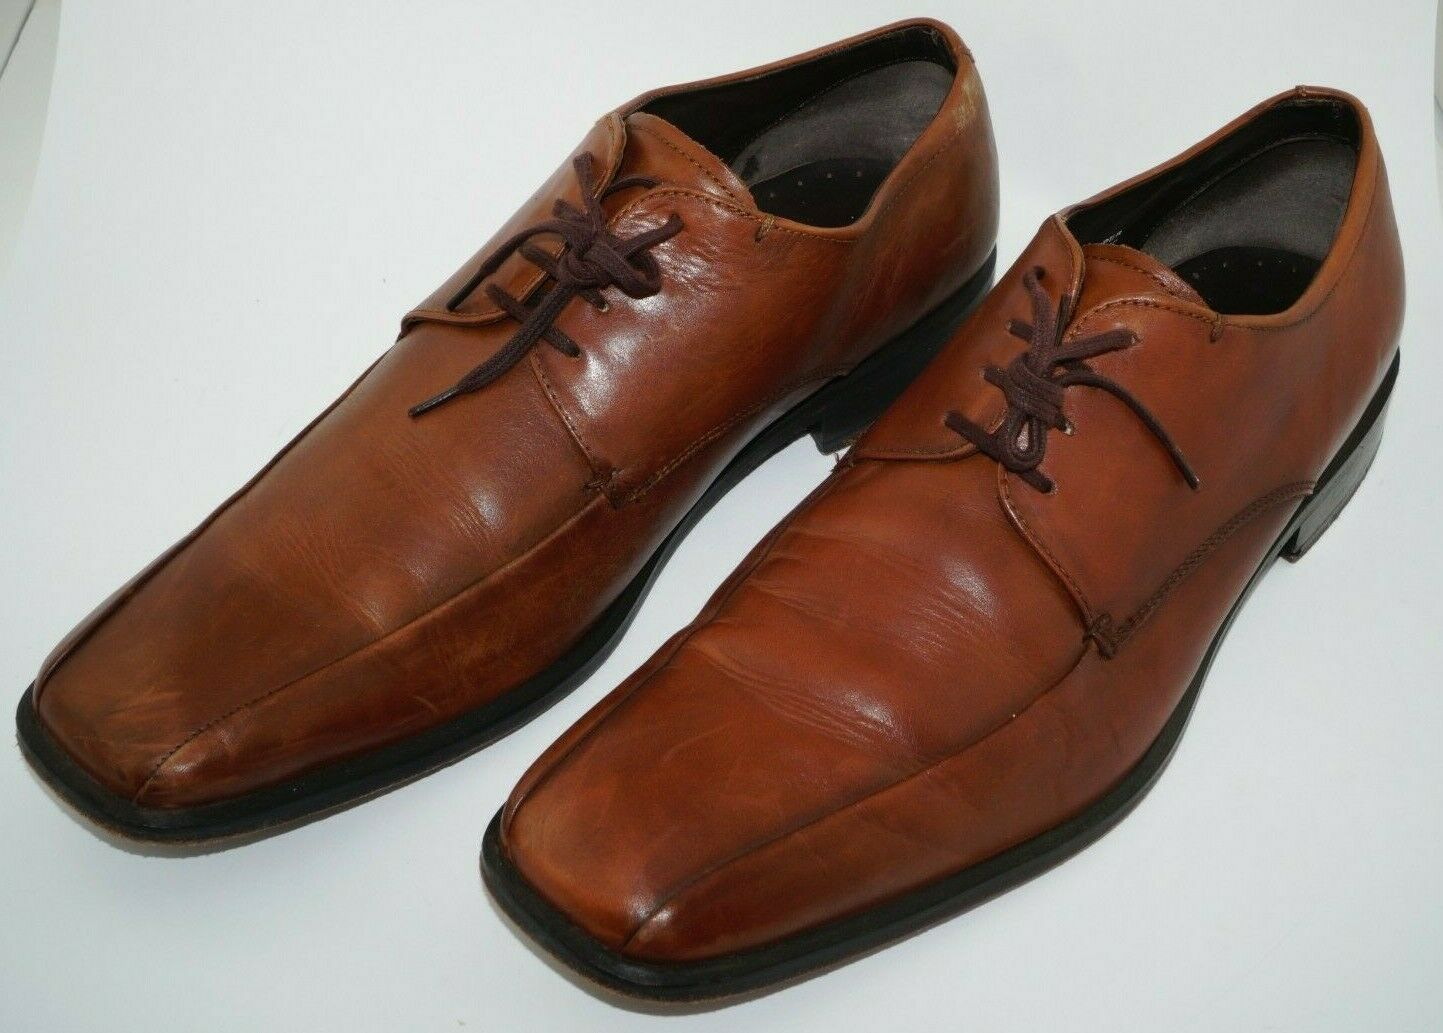 Kenneth Cole New York Men's Oxford Style Dress Brown Leather Shoes Size 11 M